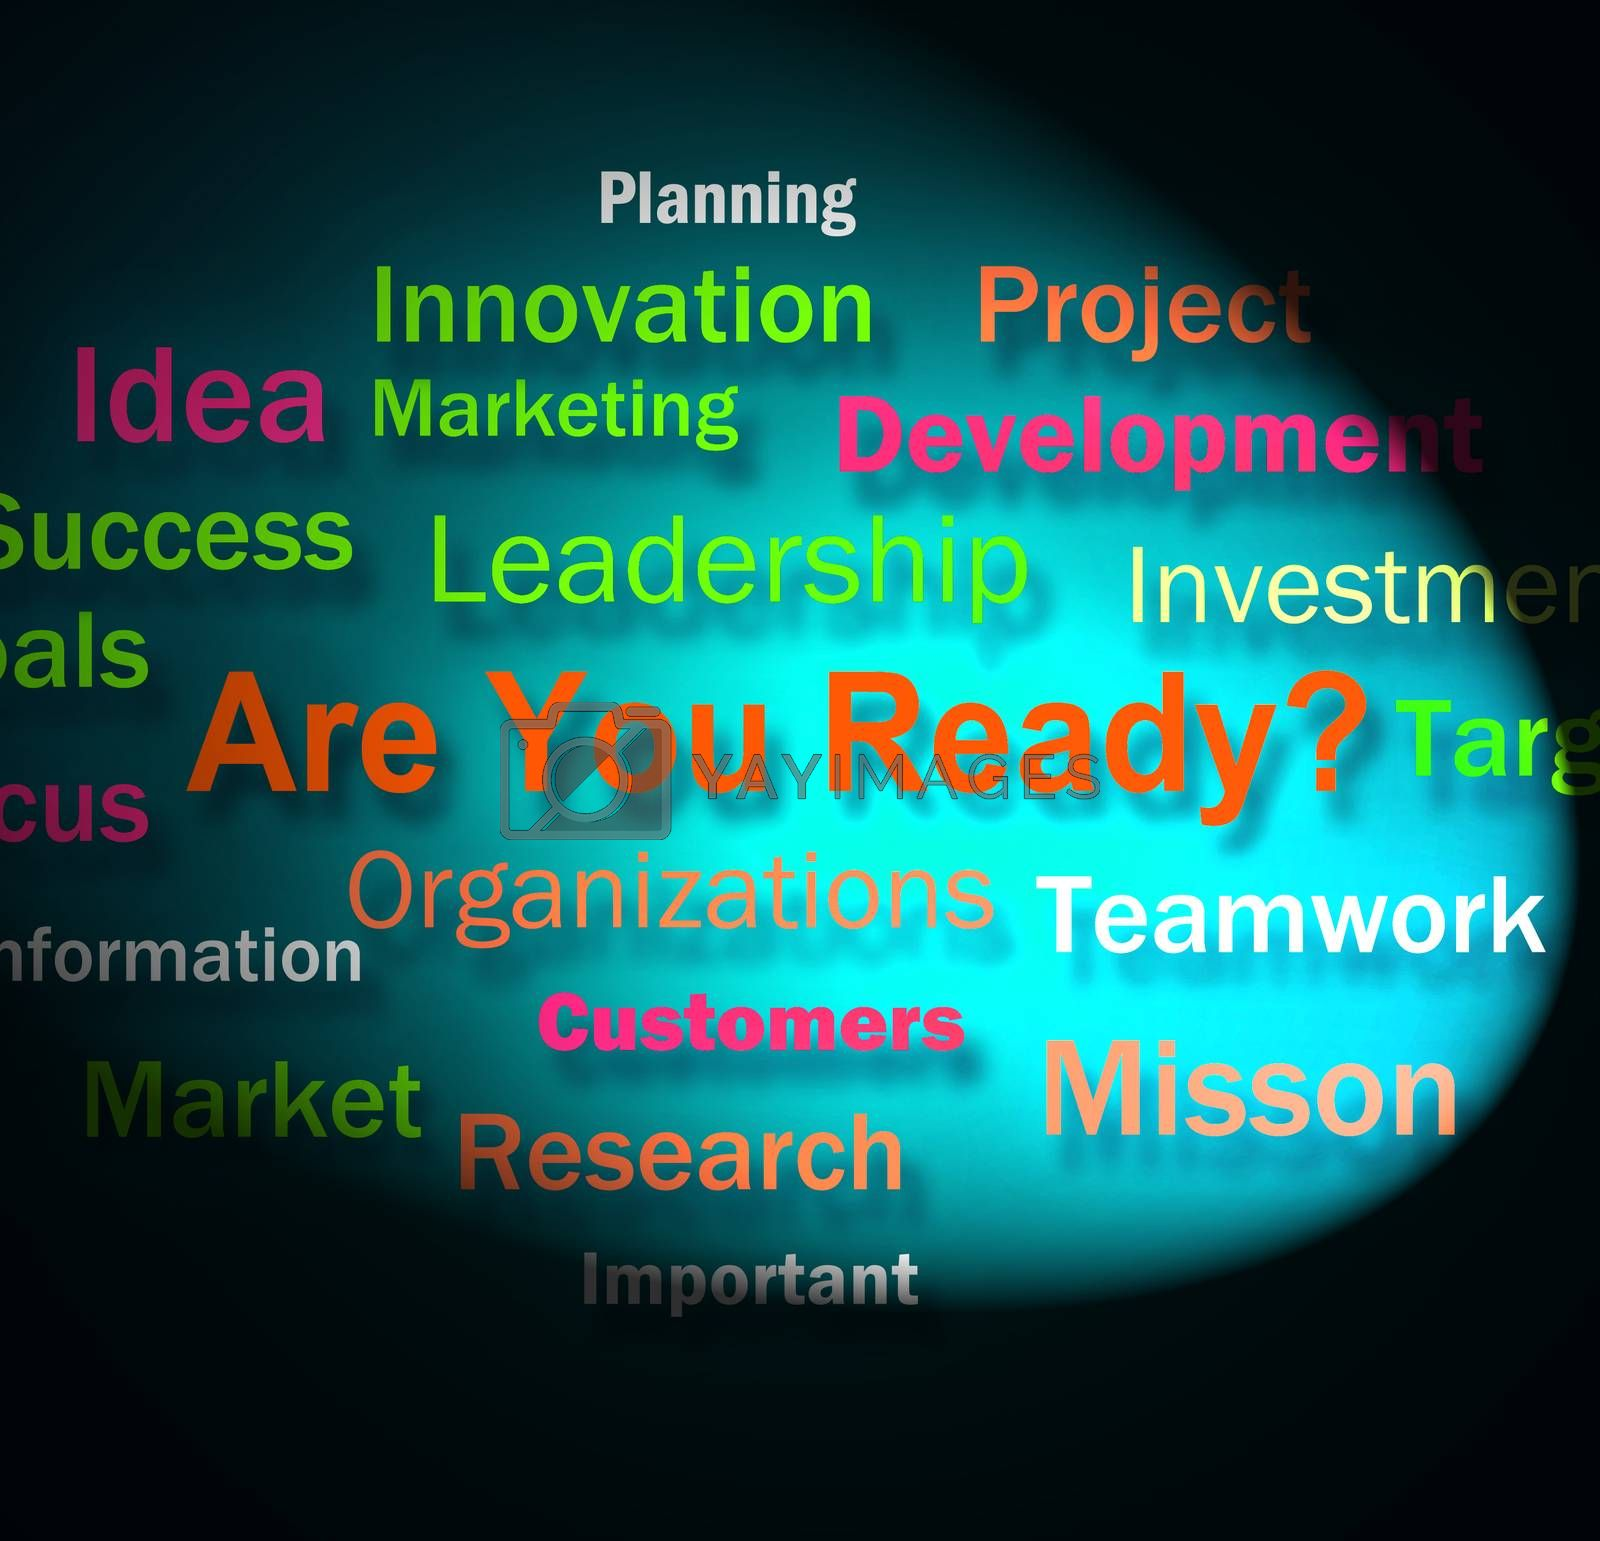 Are You Ready Words Shows Prepared For Business by stuartmiles